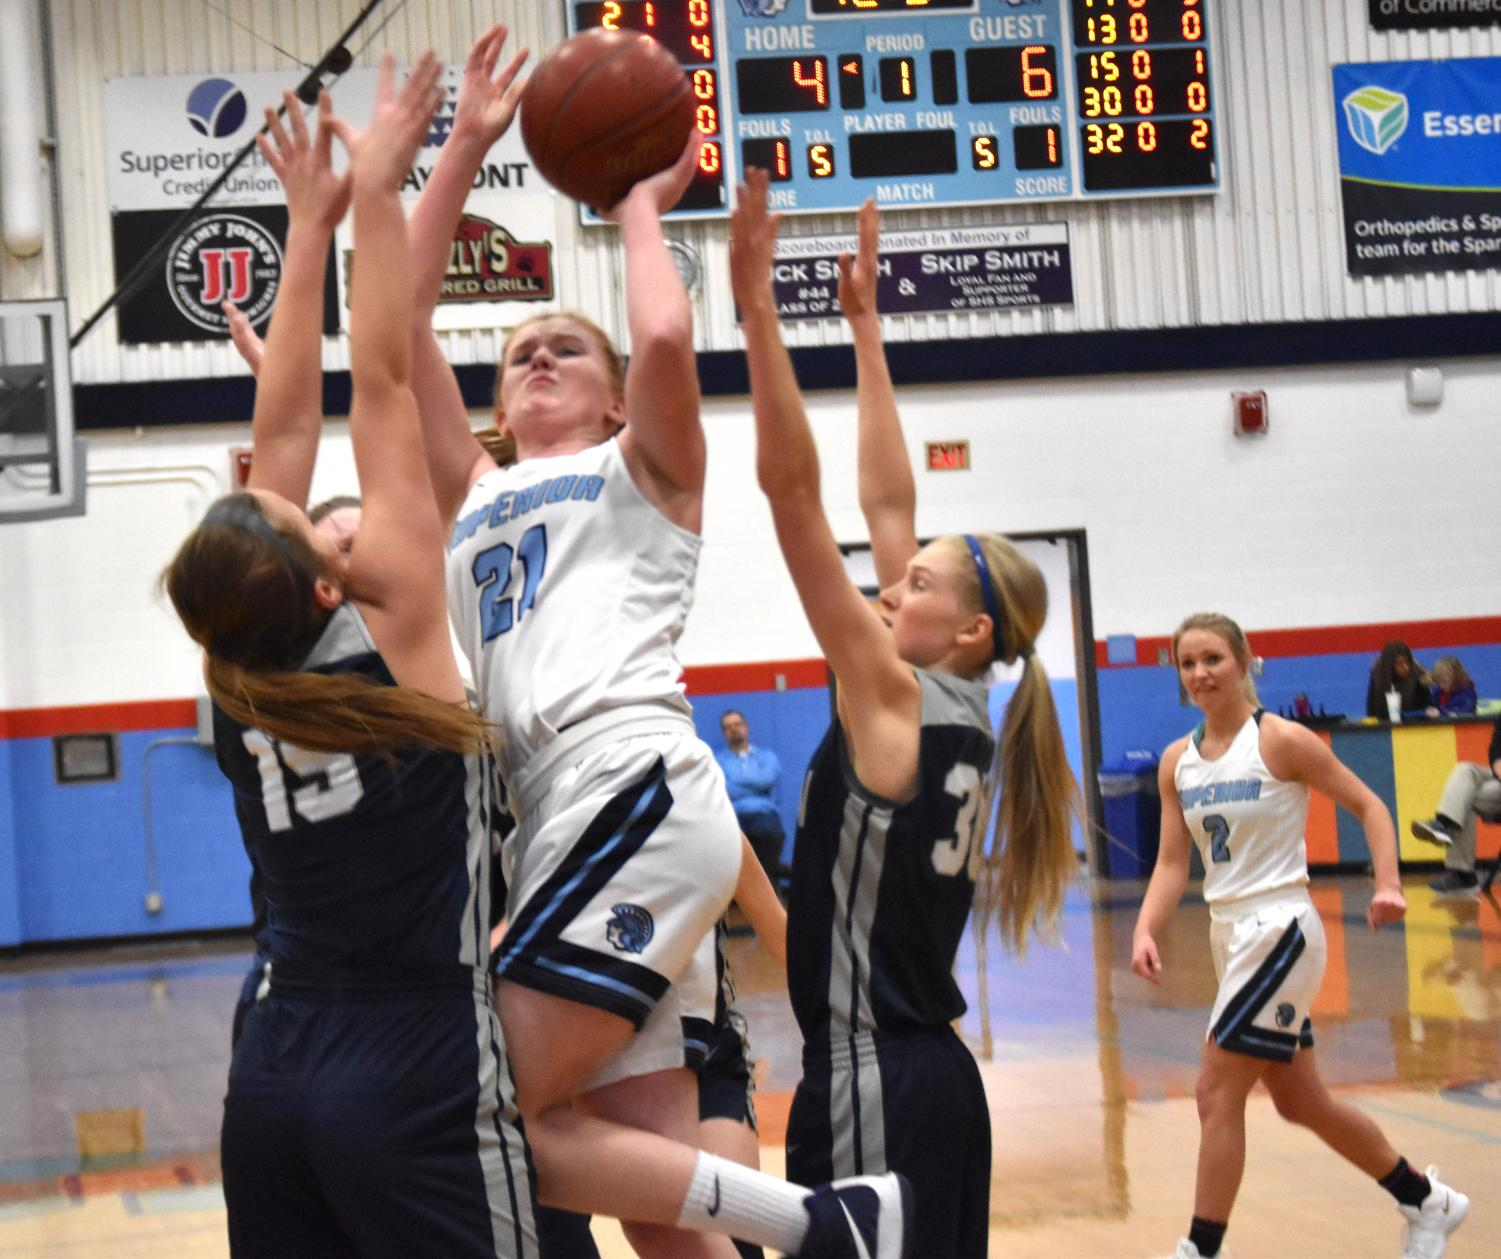 Junior Kaileigh Miller goes up for a layup early in the first half of yesterday's game against Hudson in the SHS gym. The final score was 53-42 in favor of Hudson.